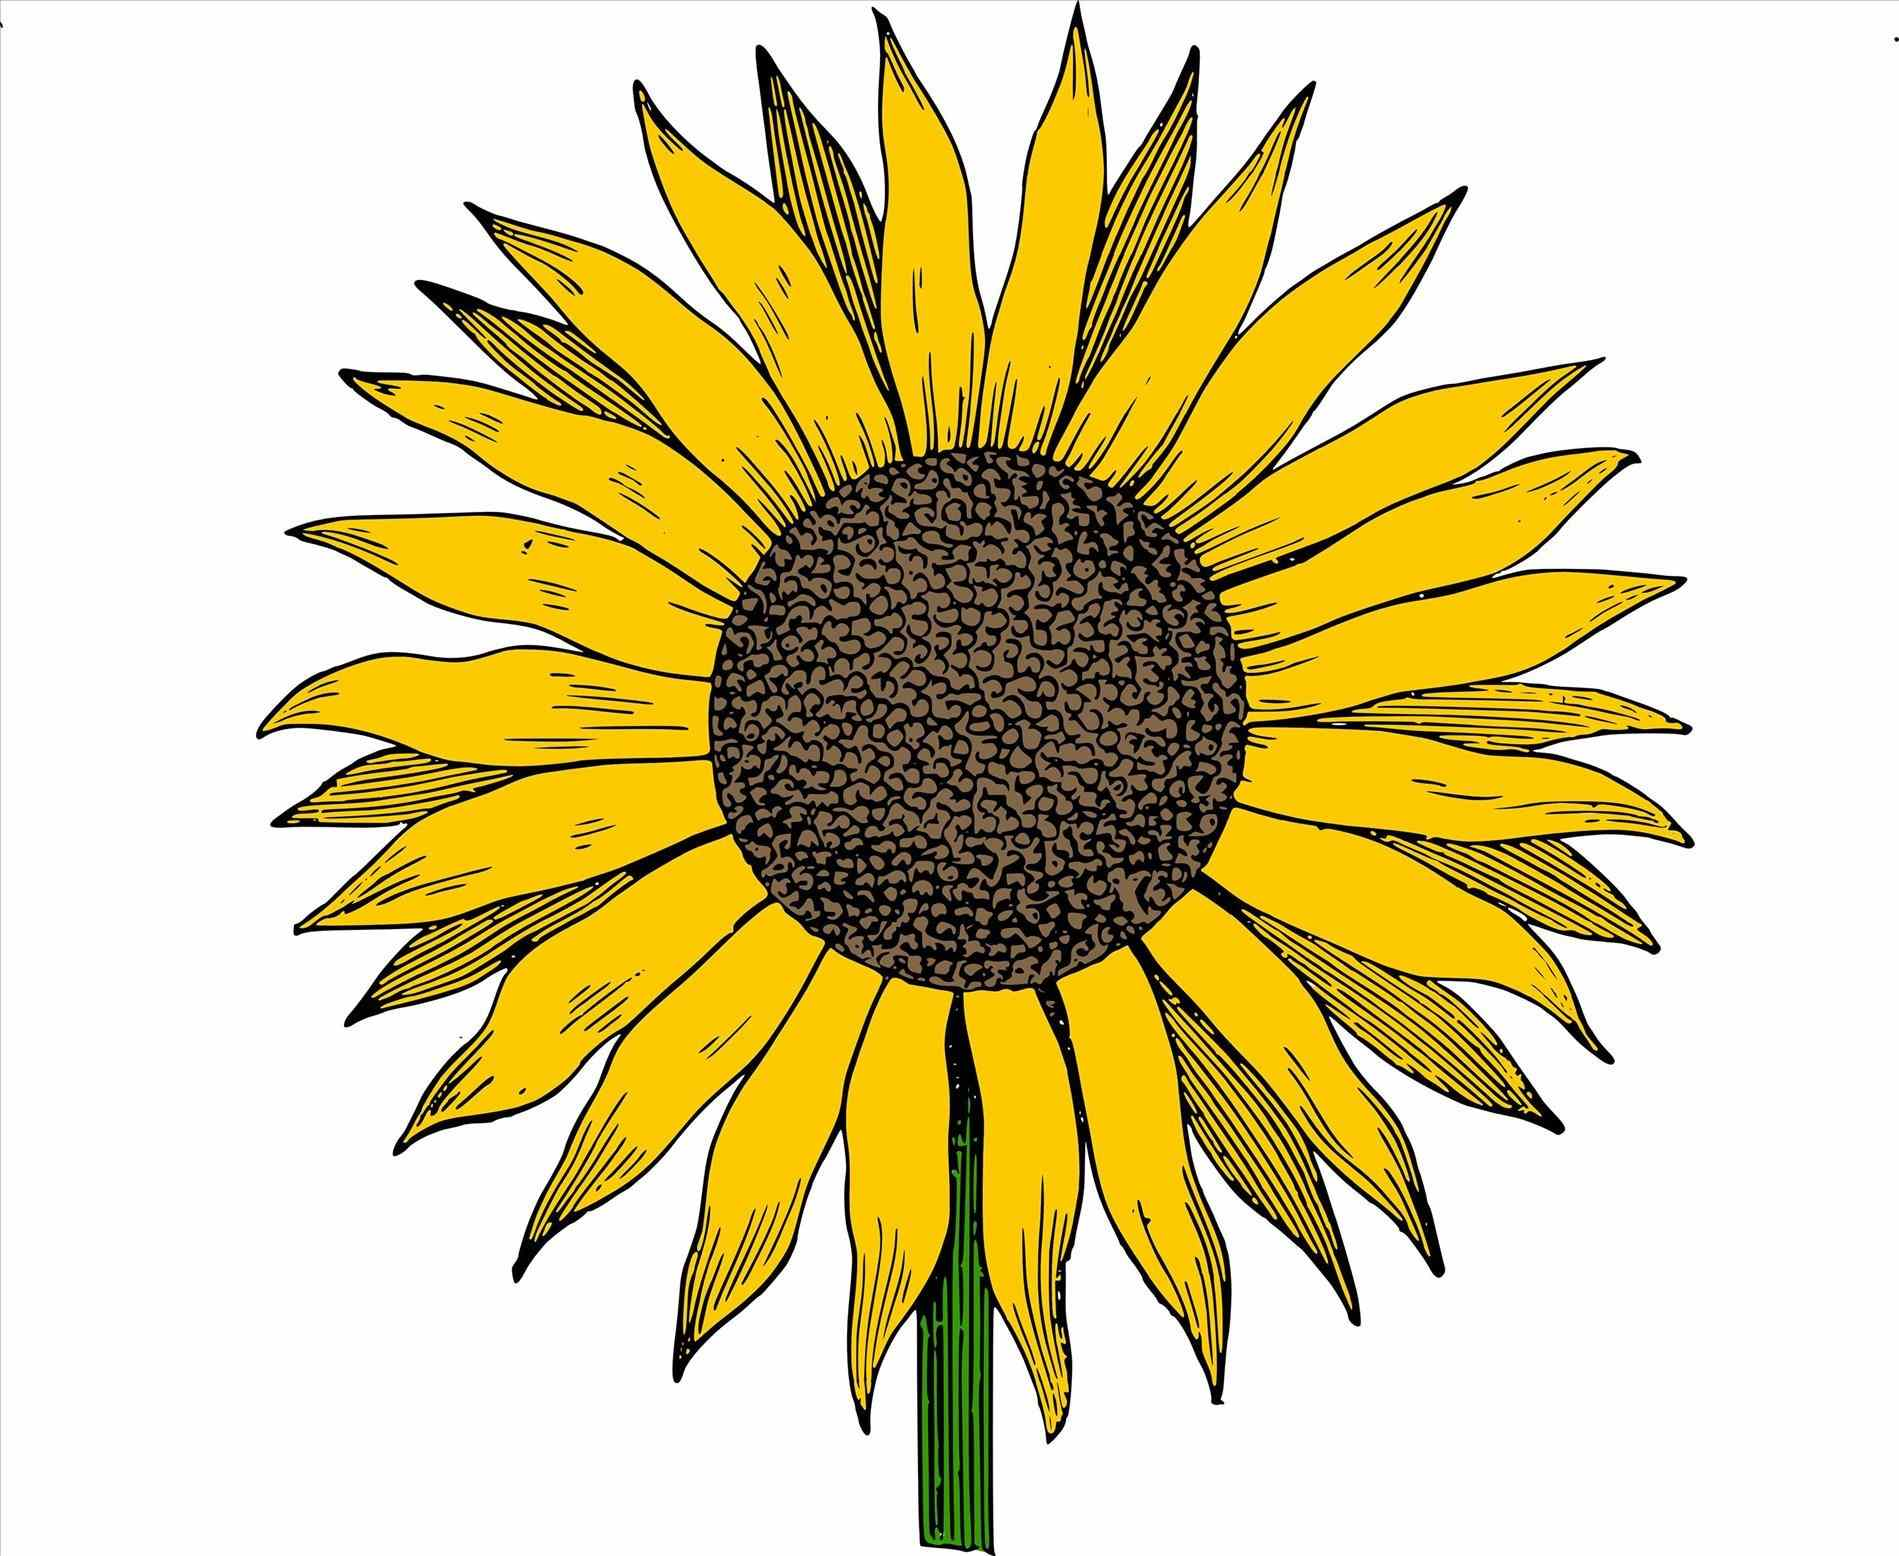 sunflower clipart at getdrawings com free for personal use rh getdrawings com sunflower clipart transparent sunflower clipart in microsoft word